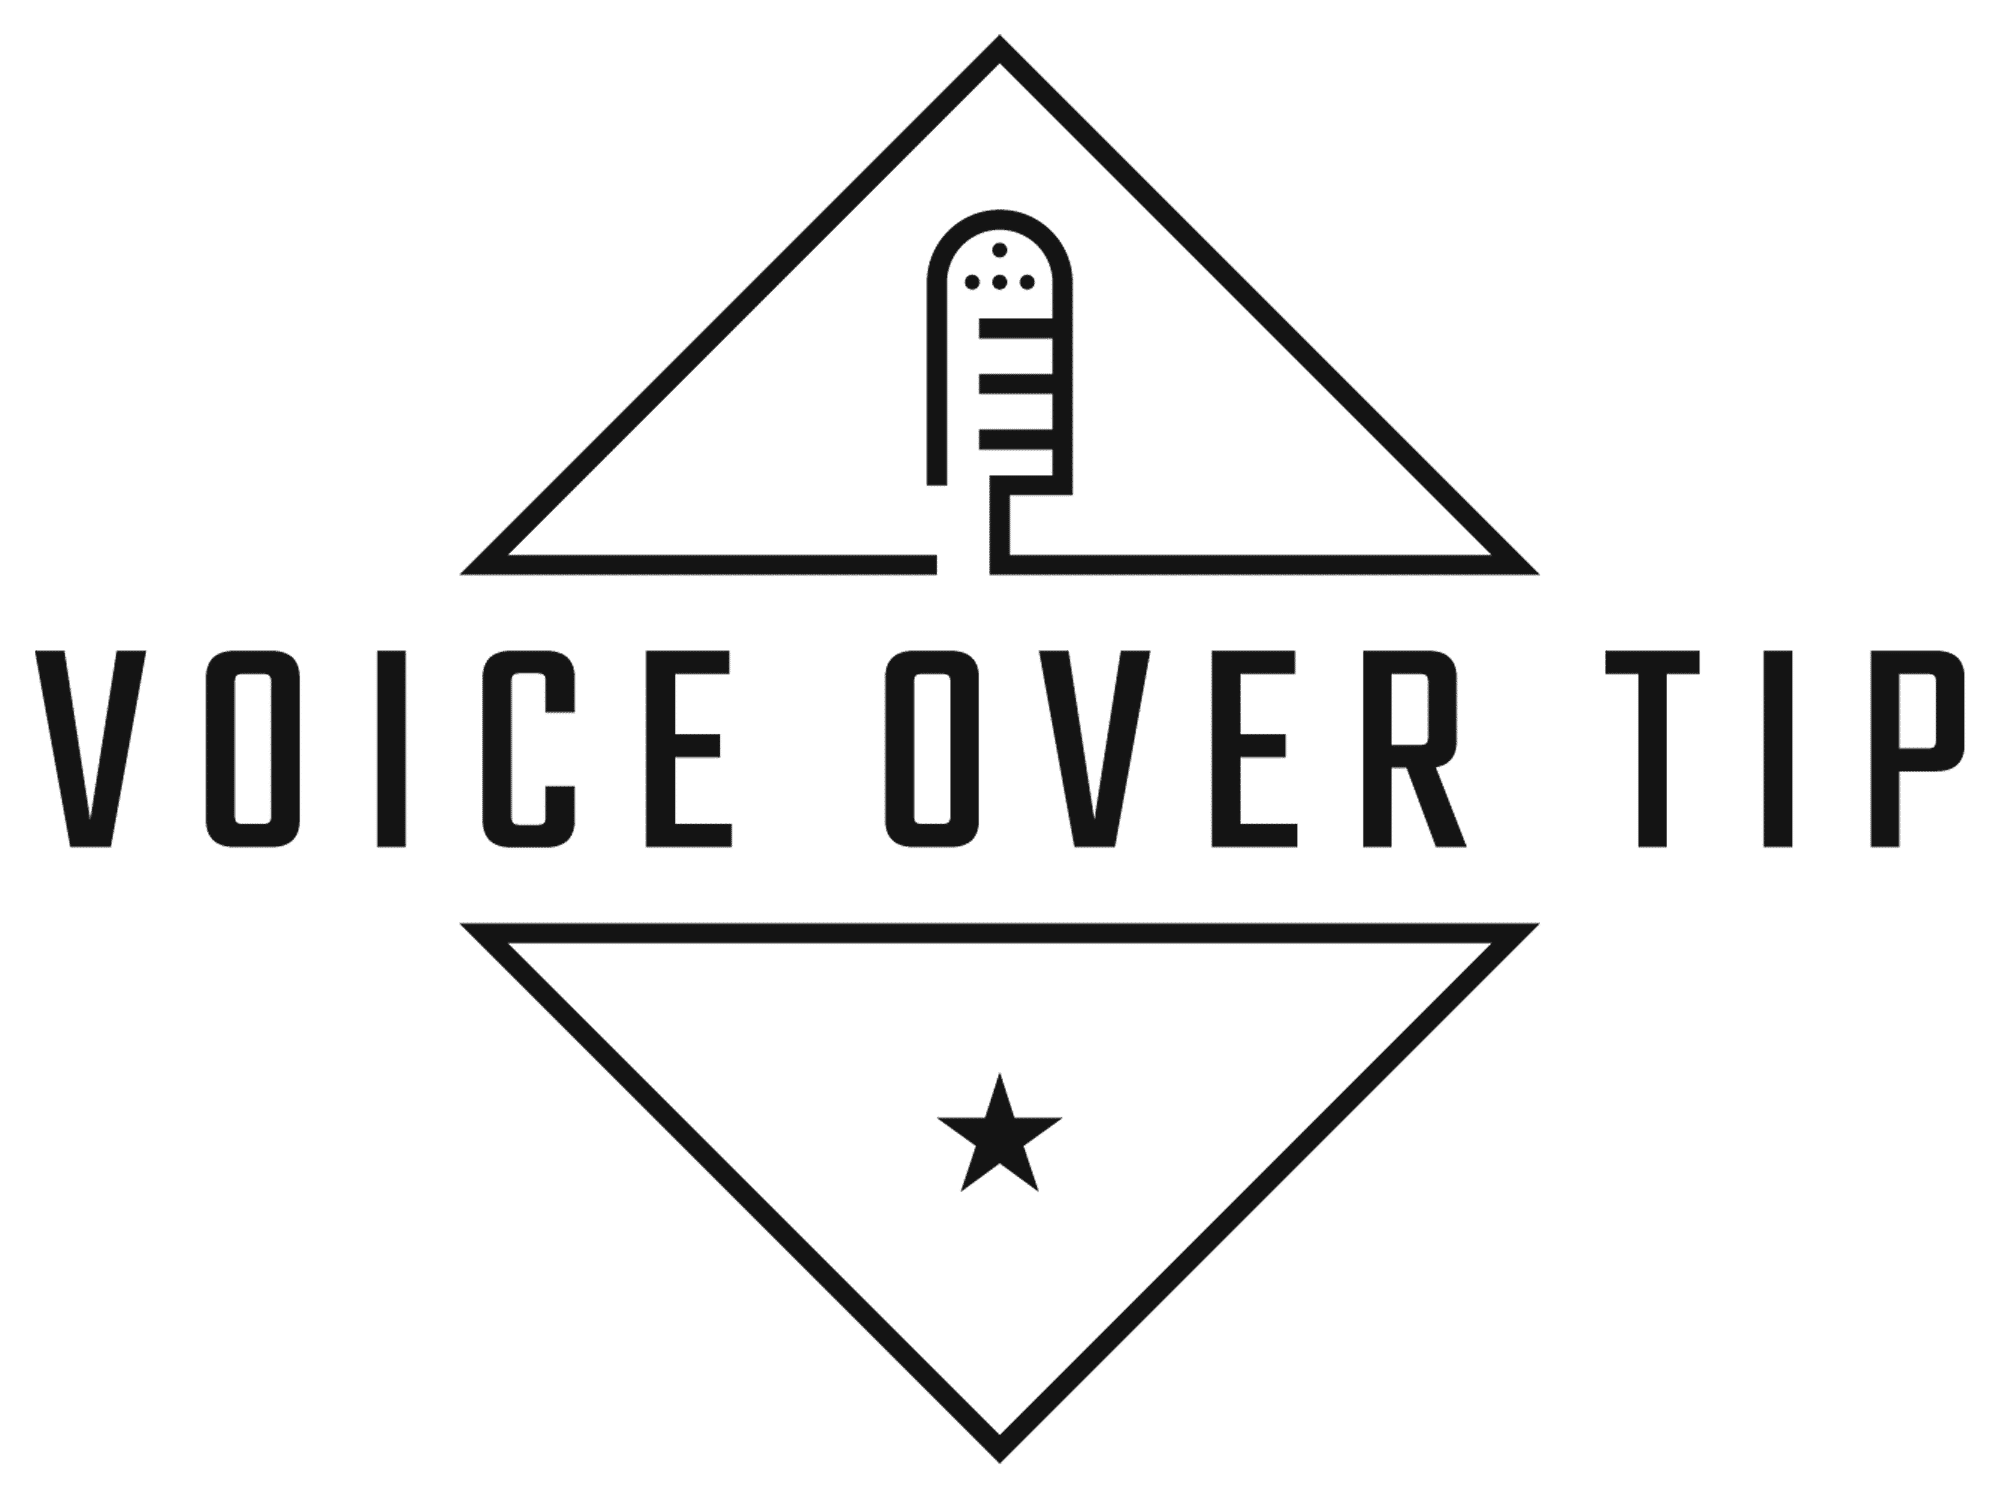 Voice Over Tip